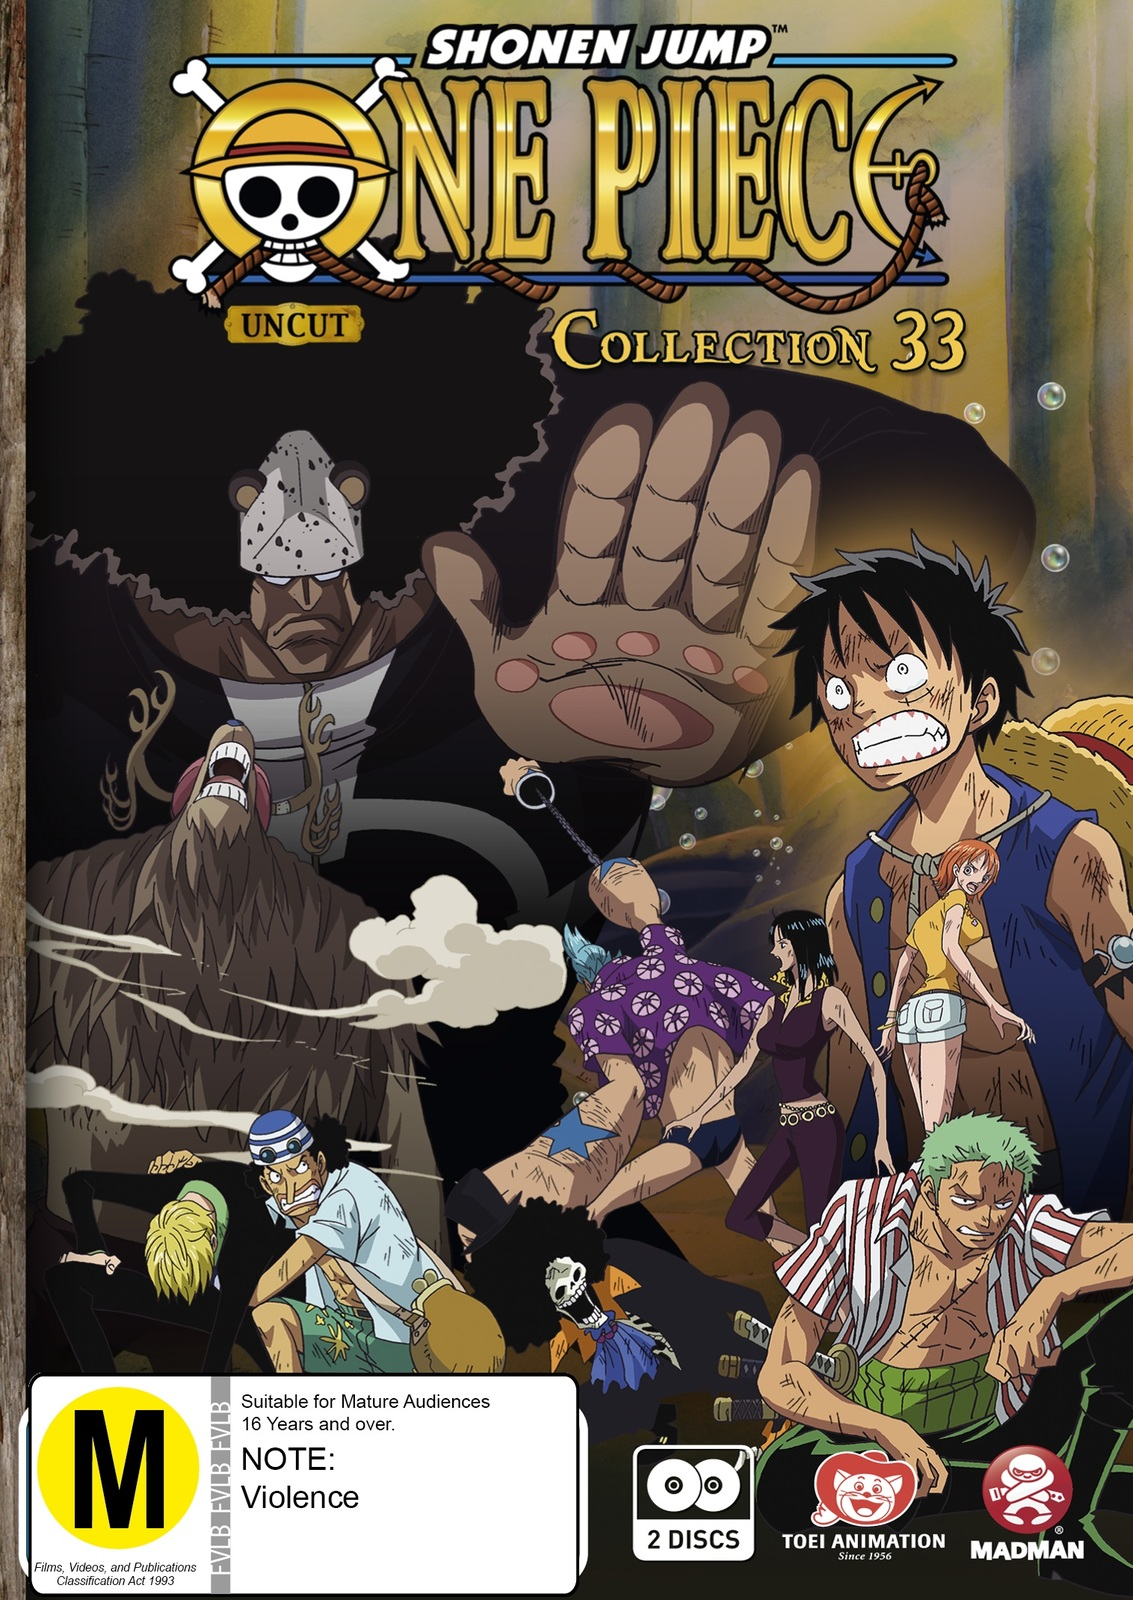 One Piece (Uncut) Collection 33 image